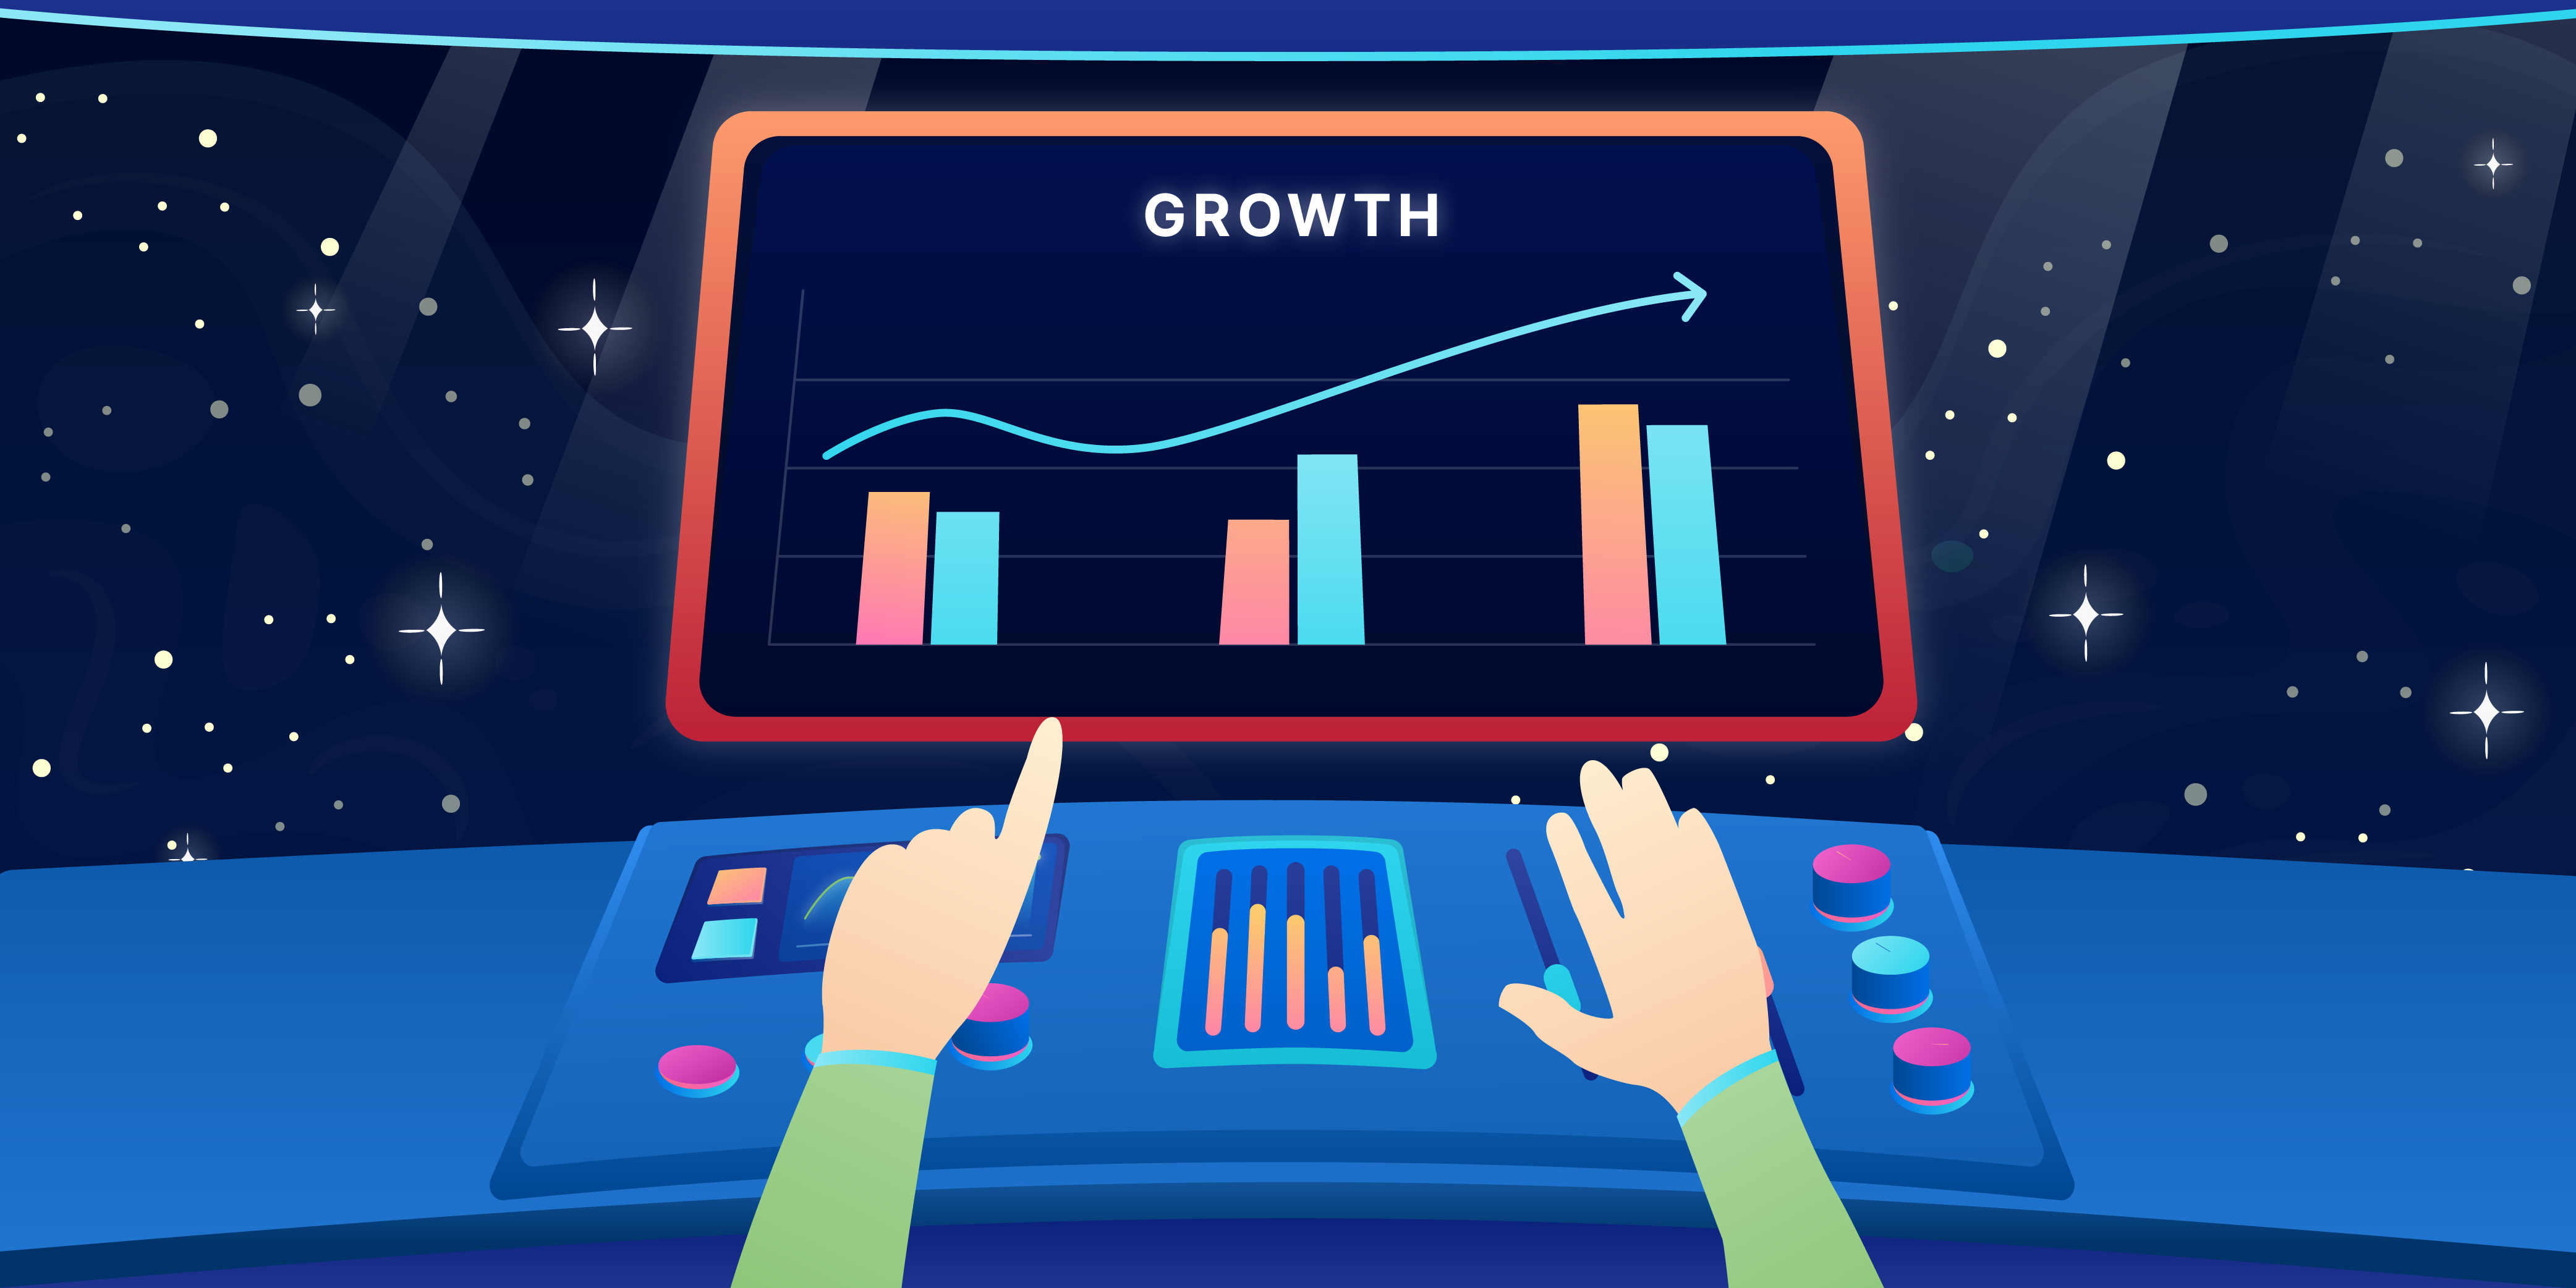 These are the five digital strategies that businesses can implement in order to maximize their revenue in growing their business. (Illustration: Kata.ai)